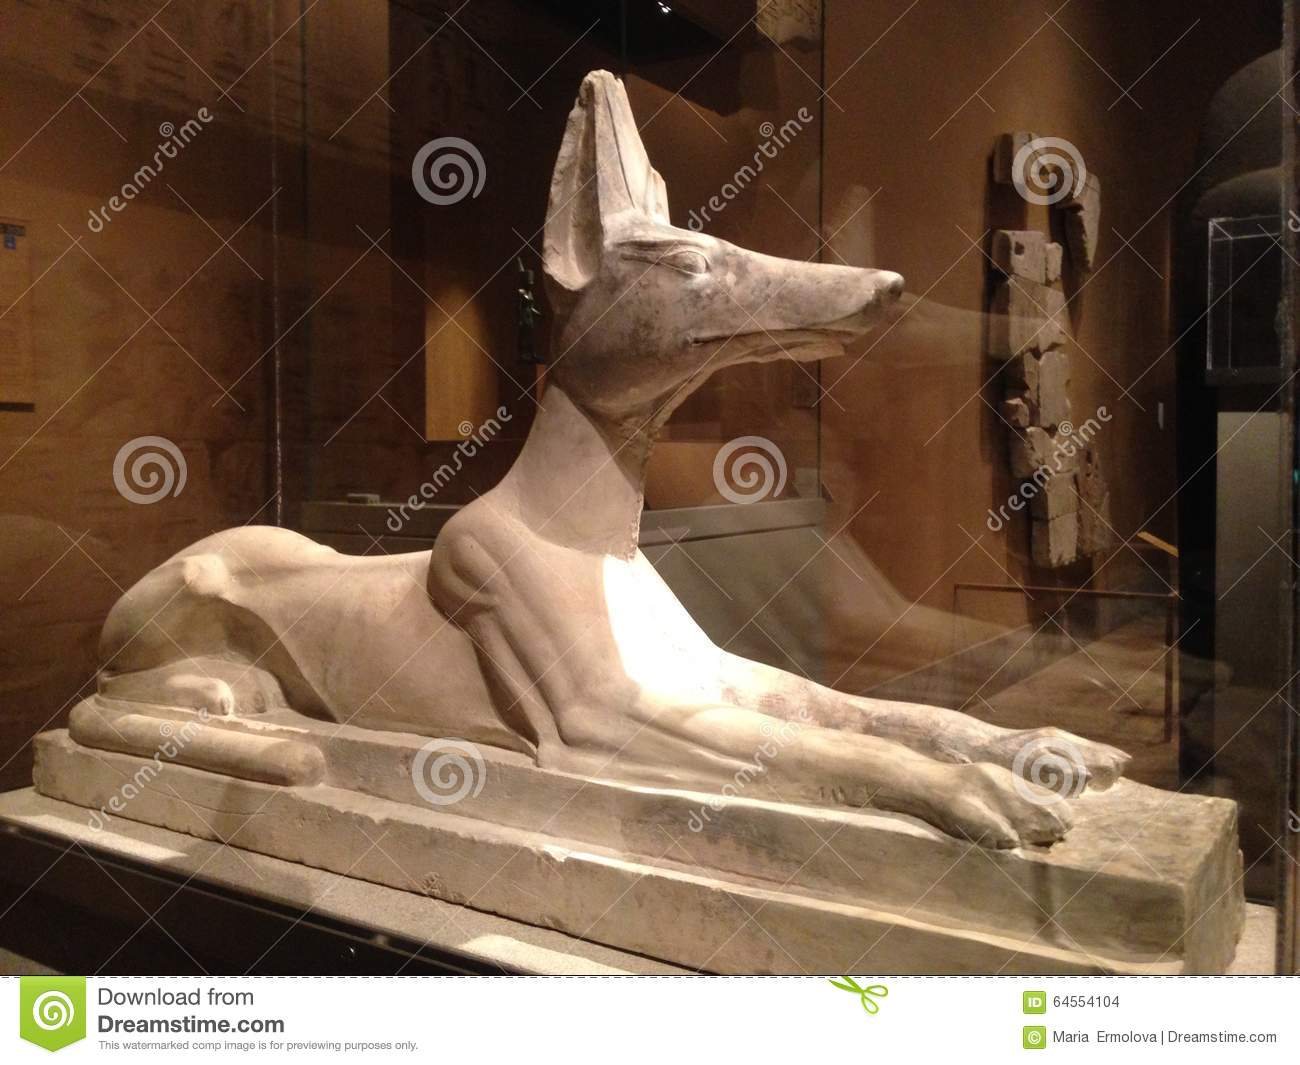 Recumbent Anubis Statue in Metropolitan Museum of Art.